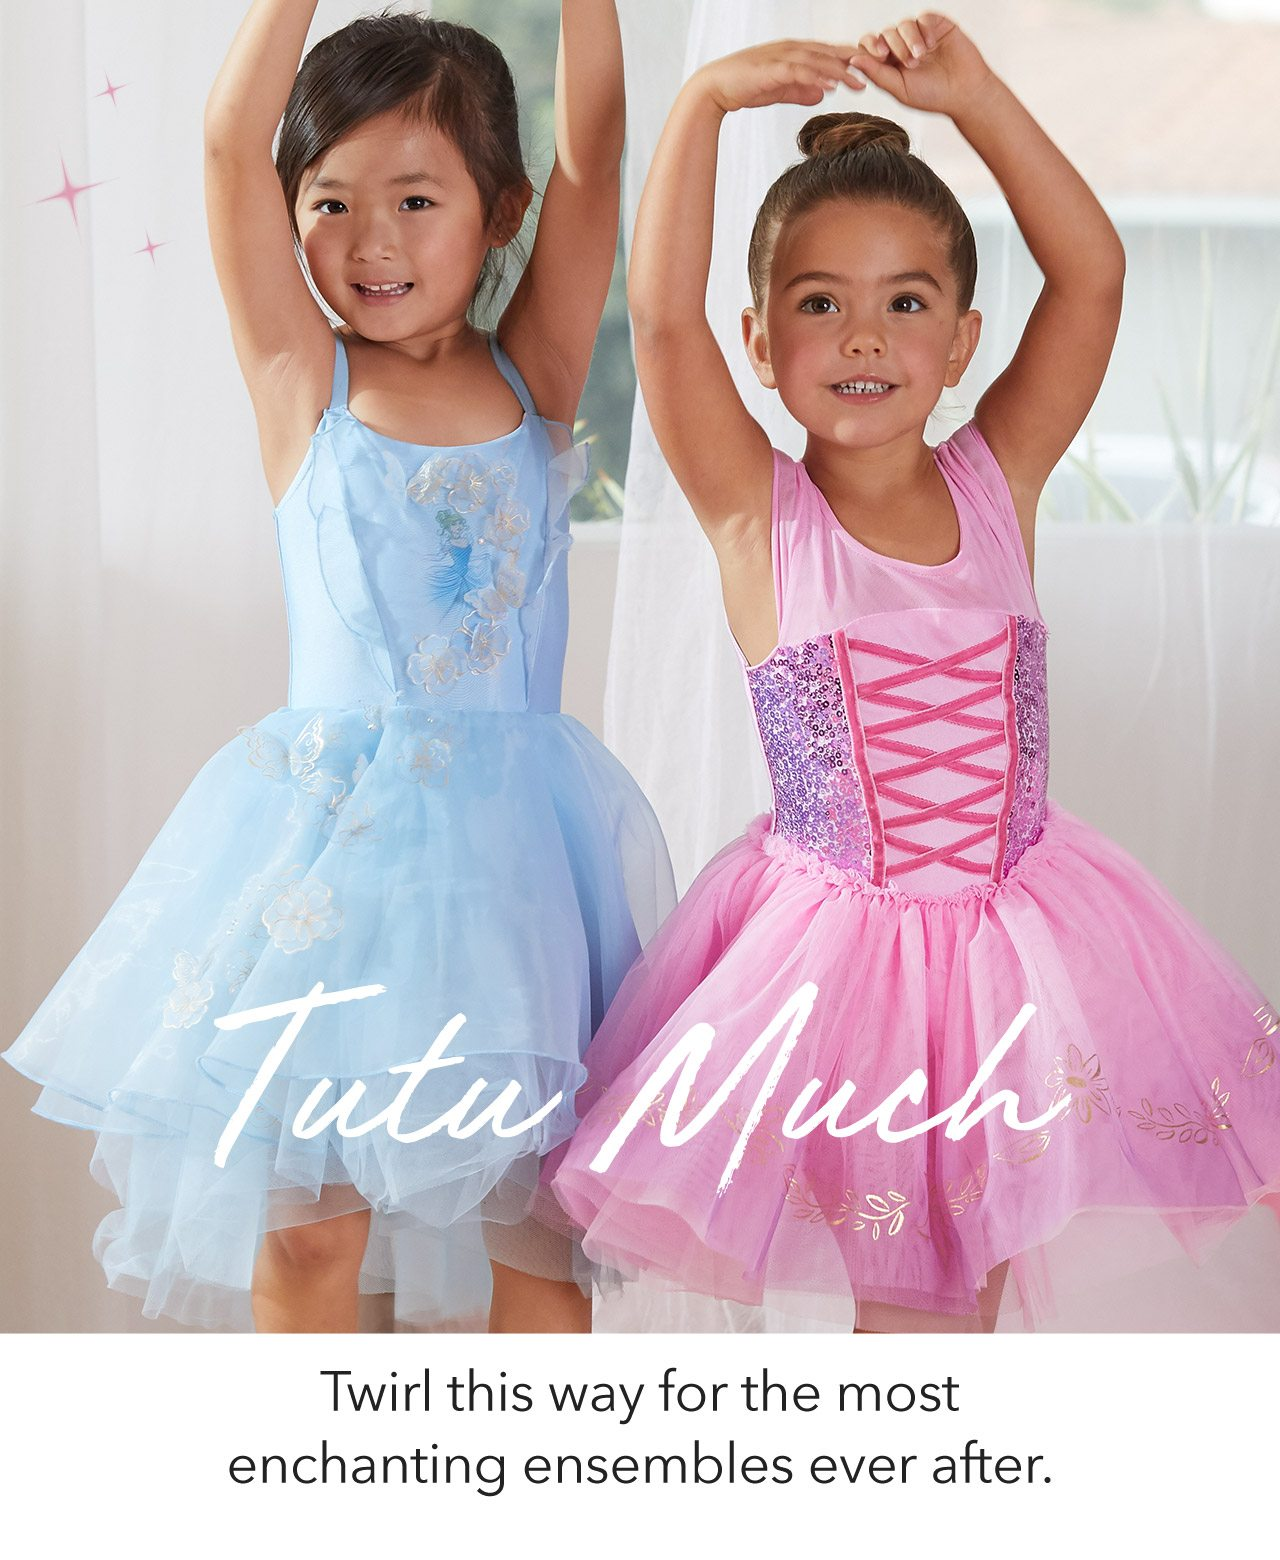 Tutu Much, Twirl this way for the most enchanting ensembles ever after. | Shop Now